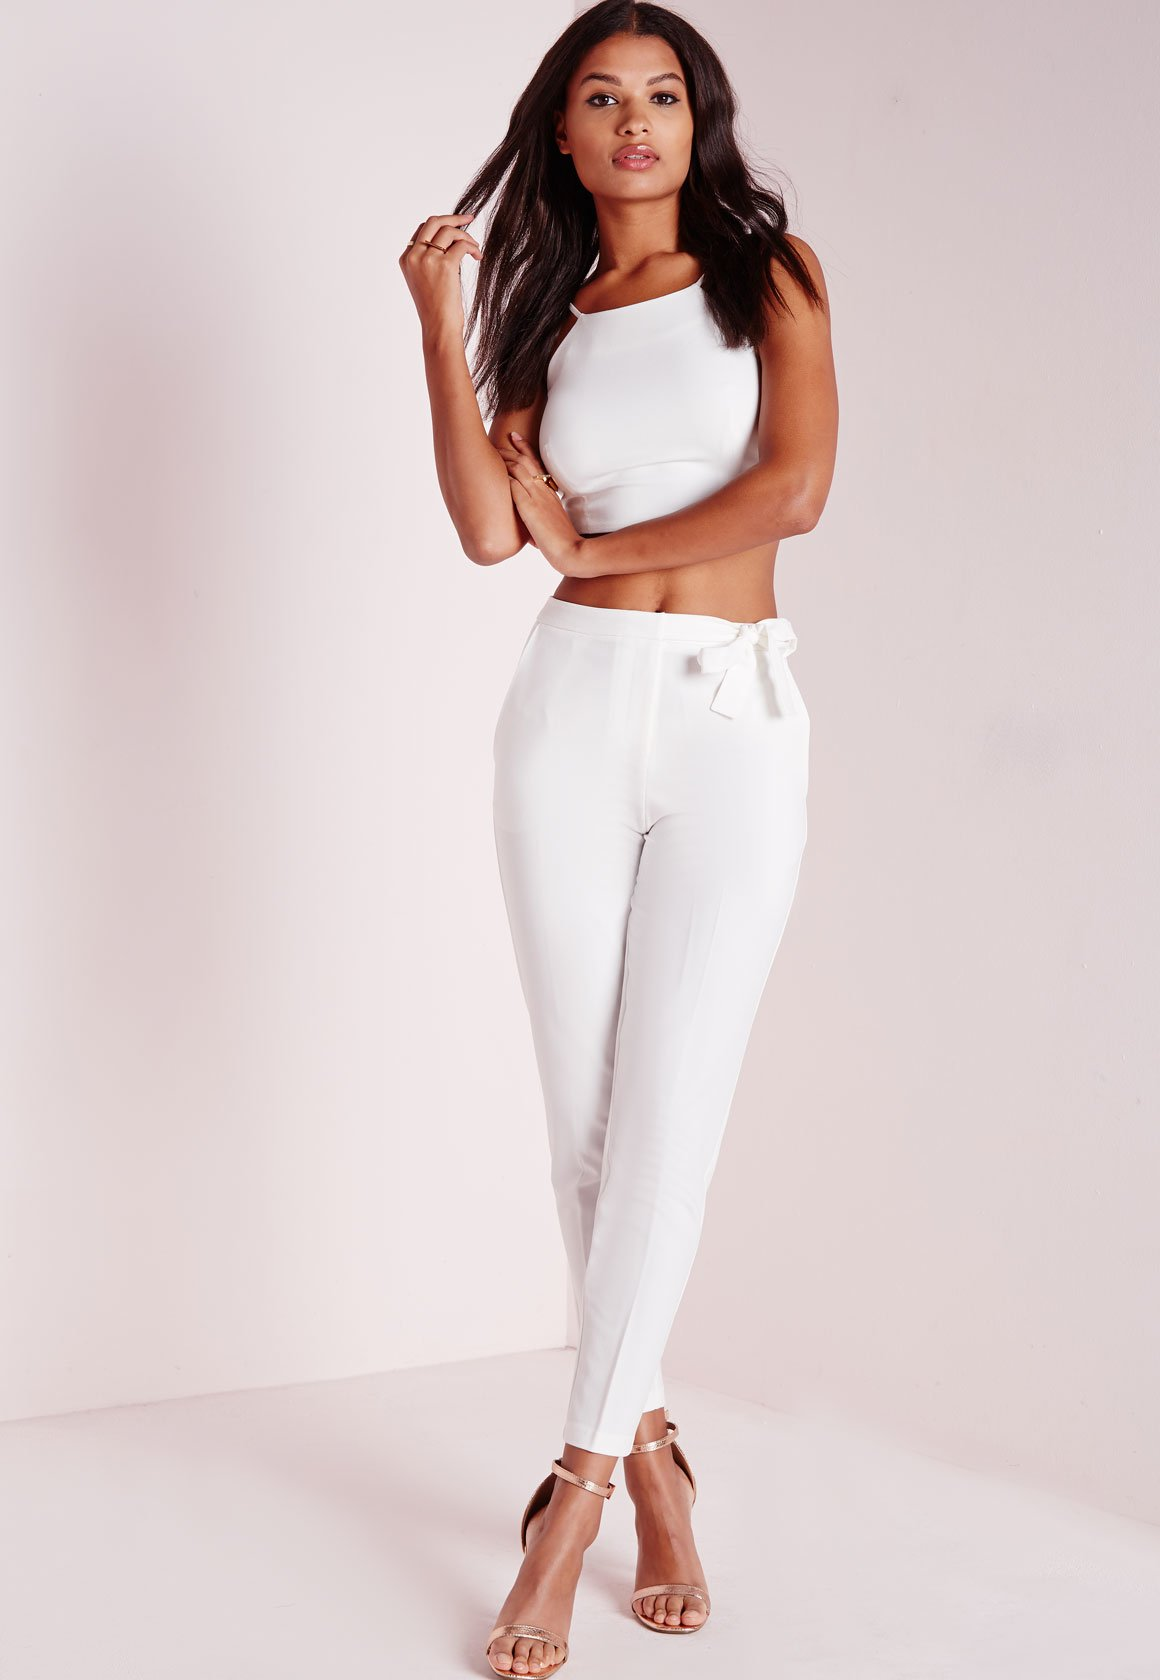 High Waisted Jeans For Tall Women